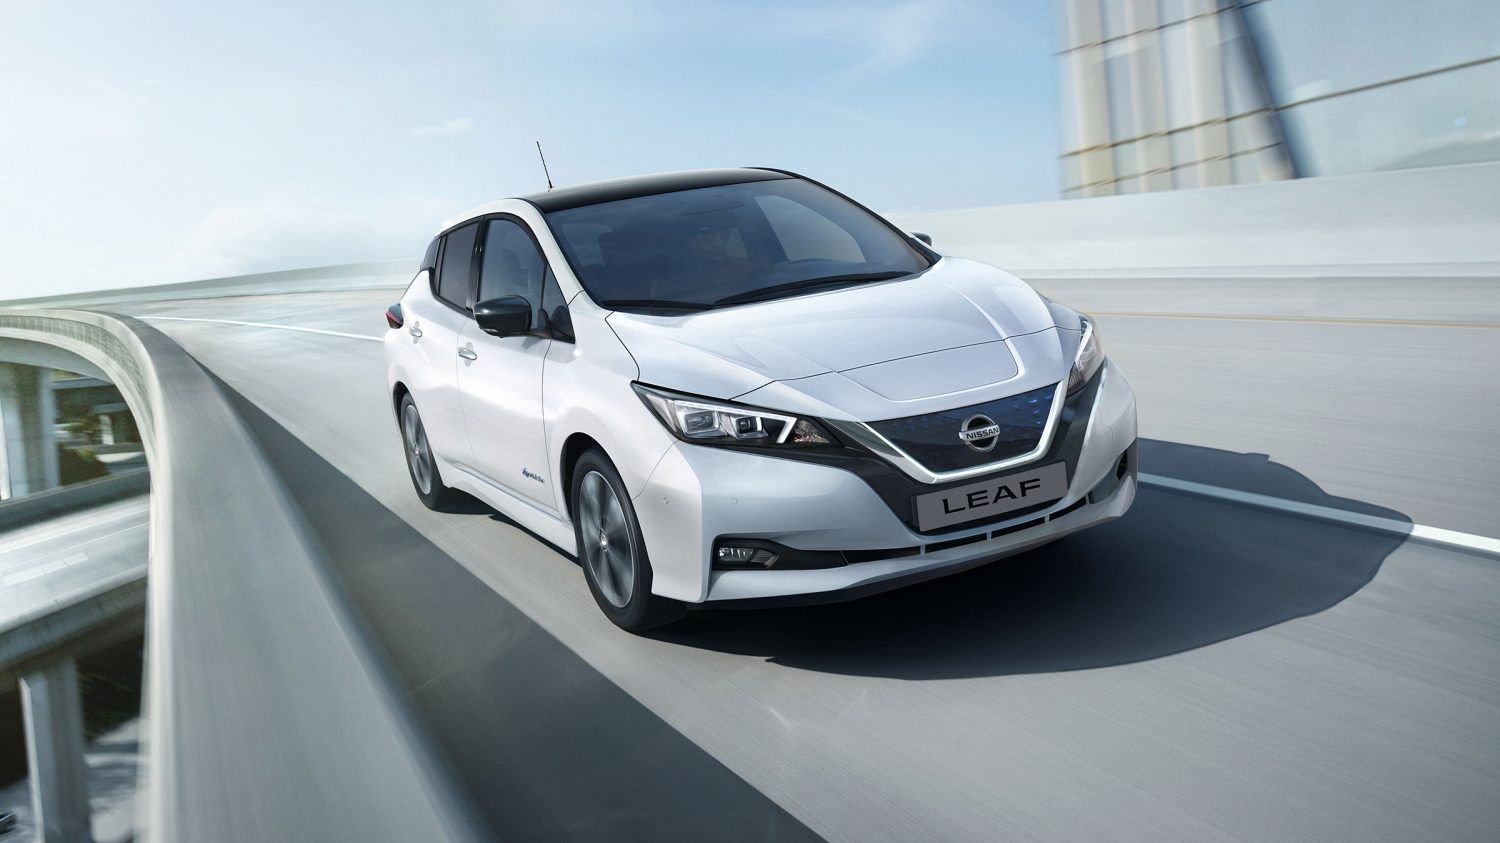 New Nissan LEAF driving shot on a bridge